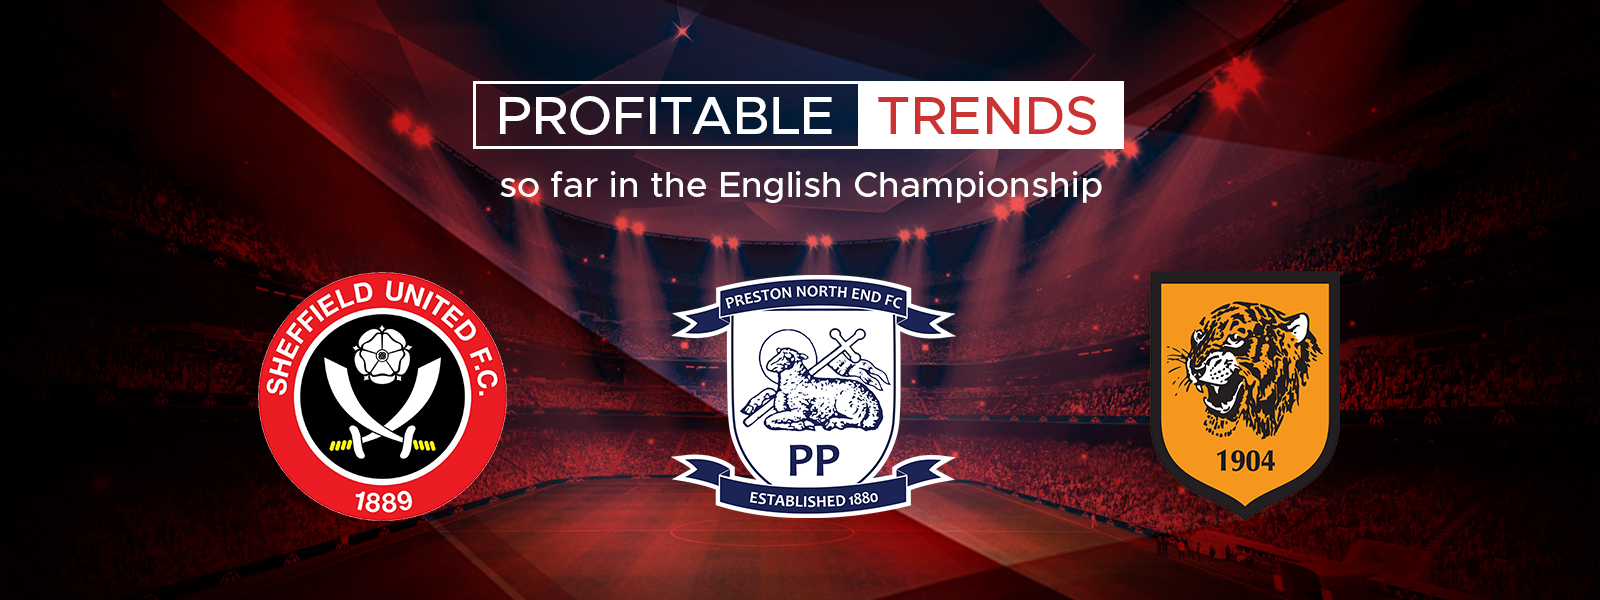 Top 3 Profitable Trends In The English Championship